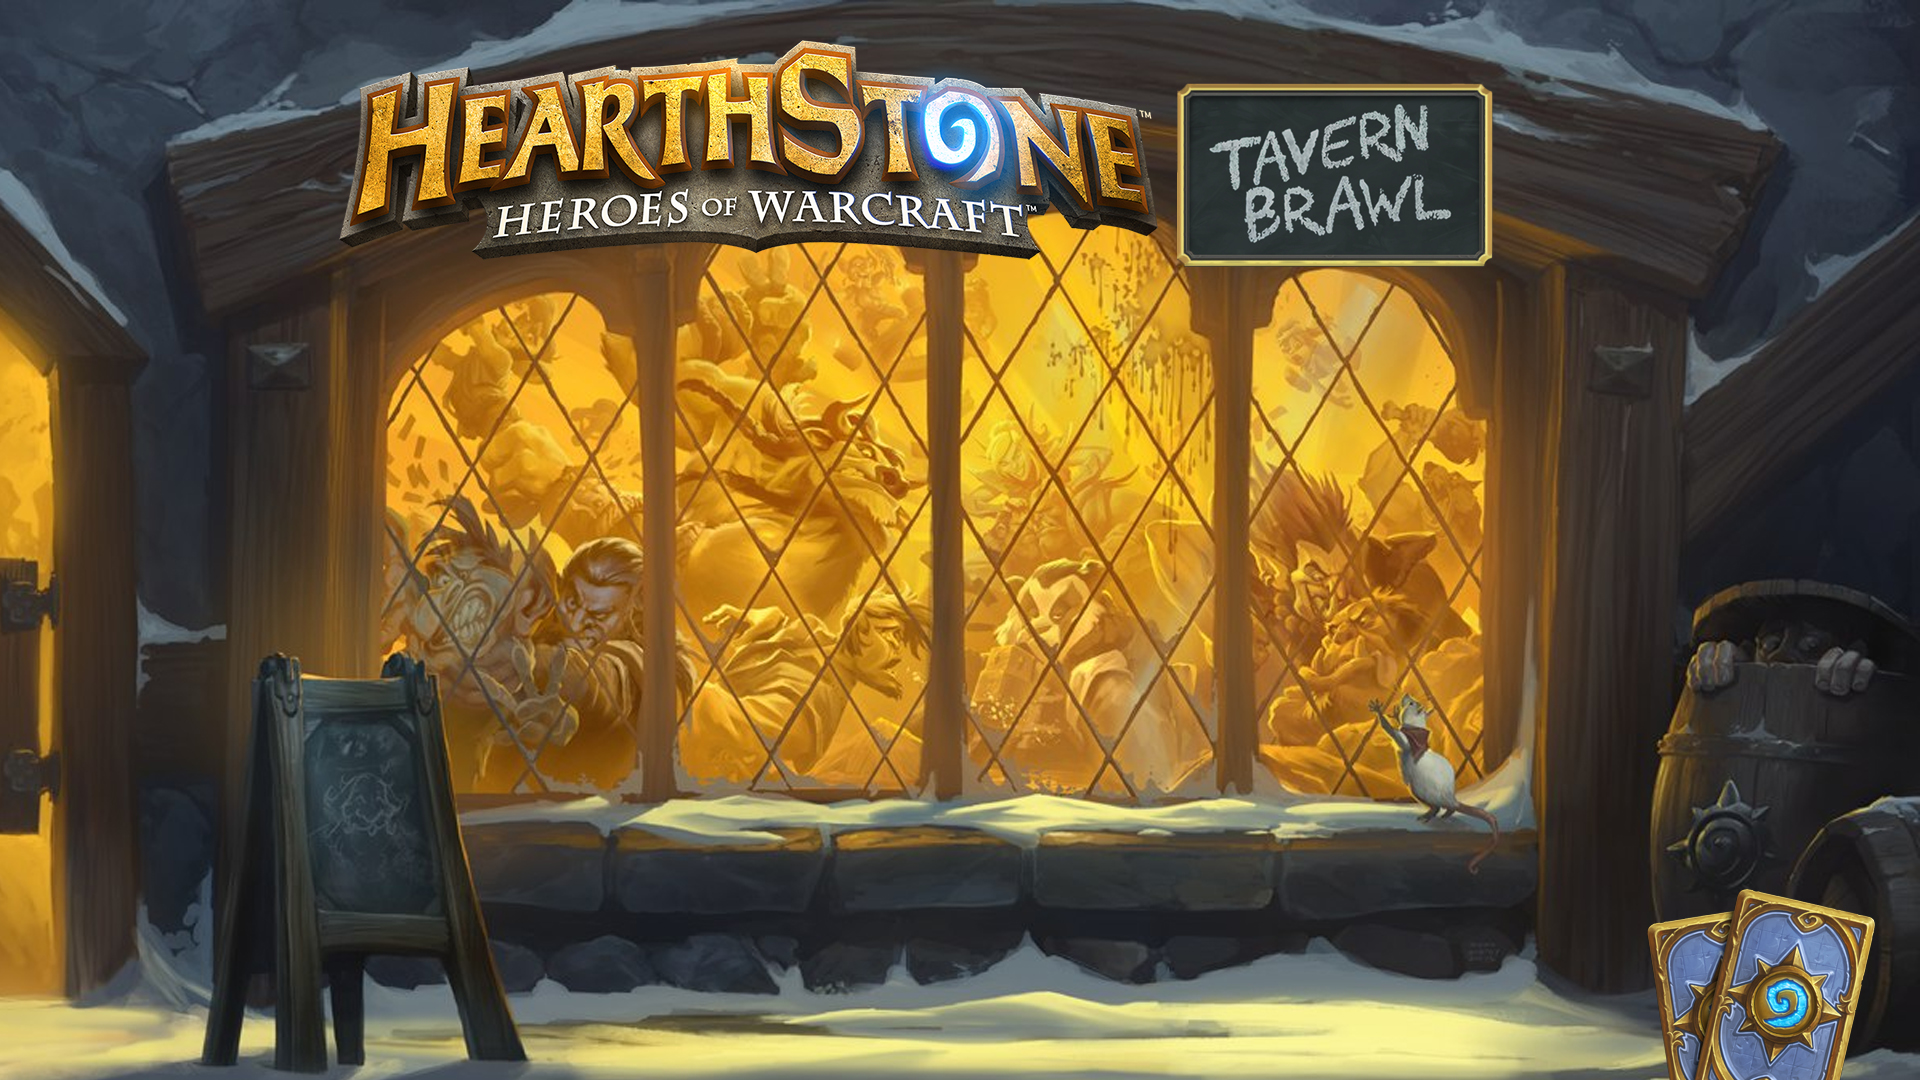 14.30 - Start Hearthstone Tavern Brawl